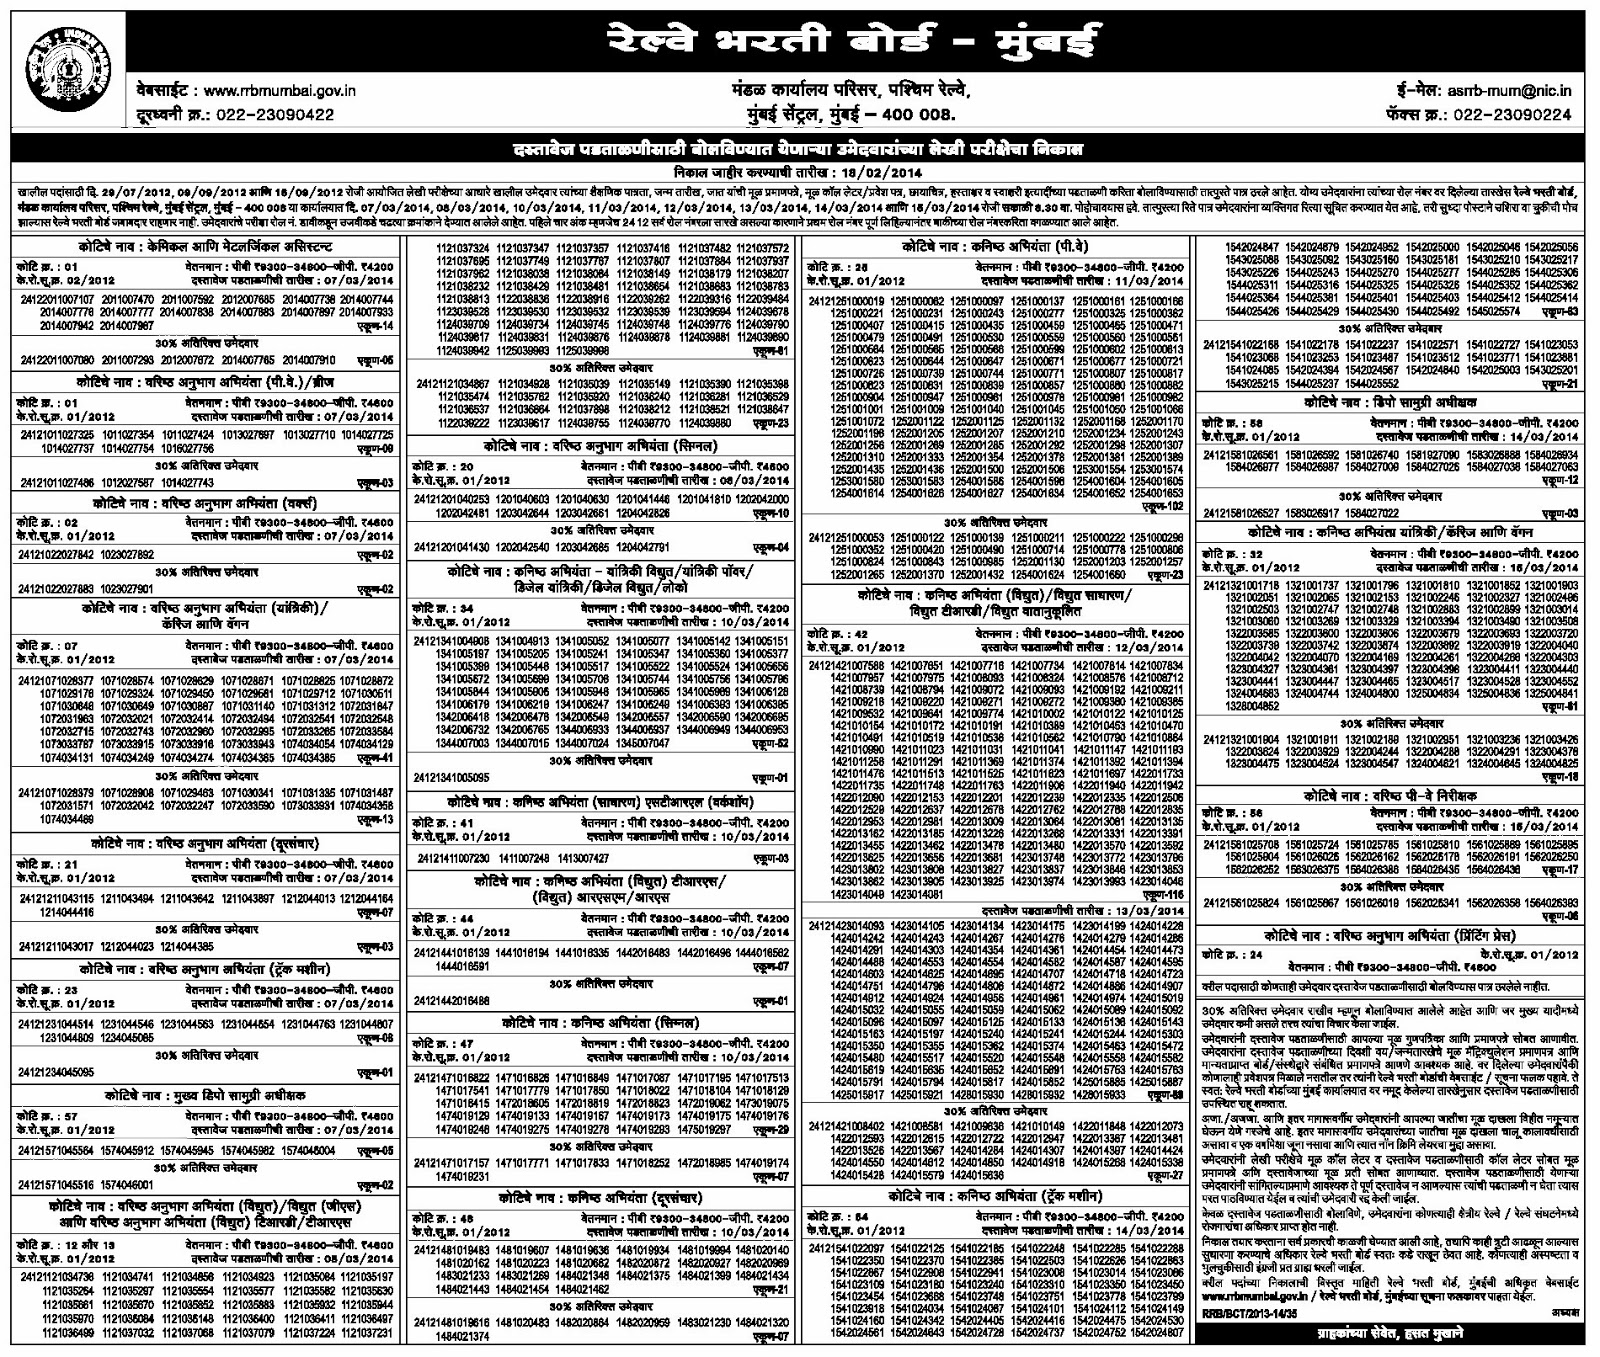 RRB Mumbai Recruitment Written Exam Result 2014, Selection List 2014